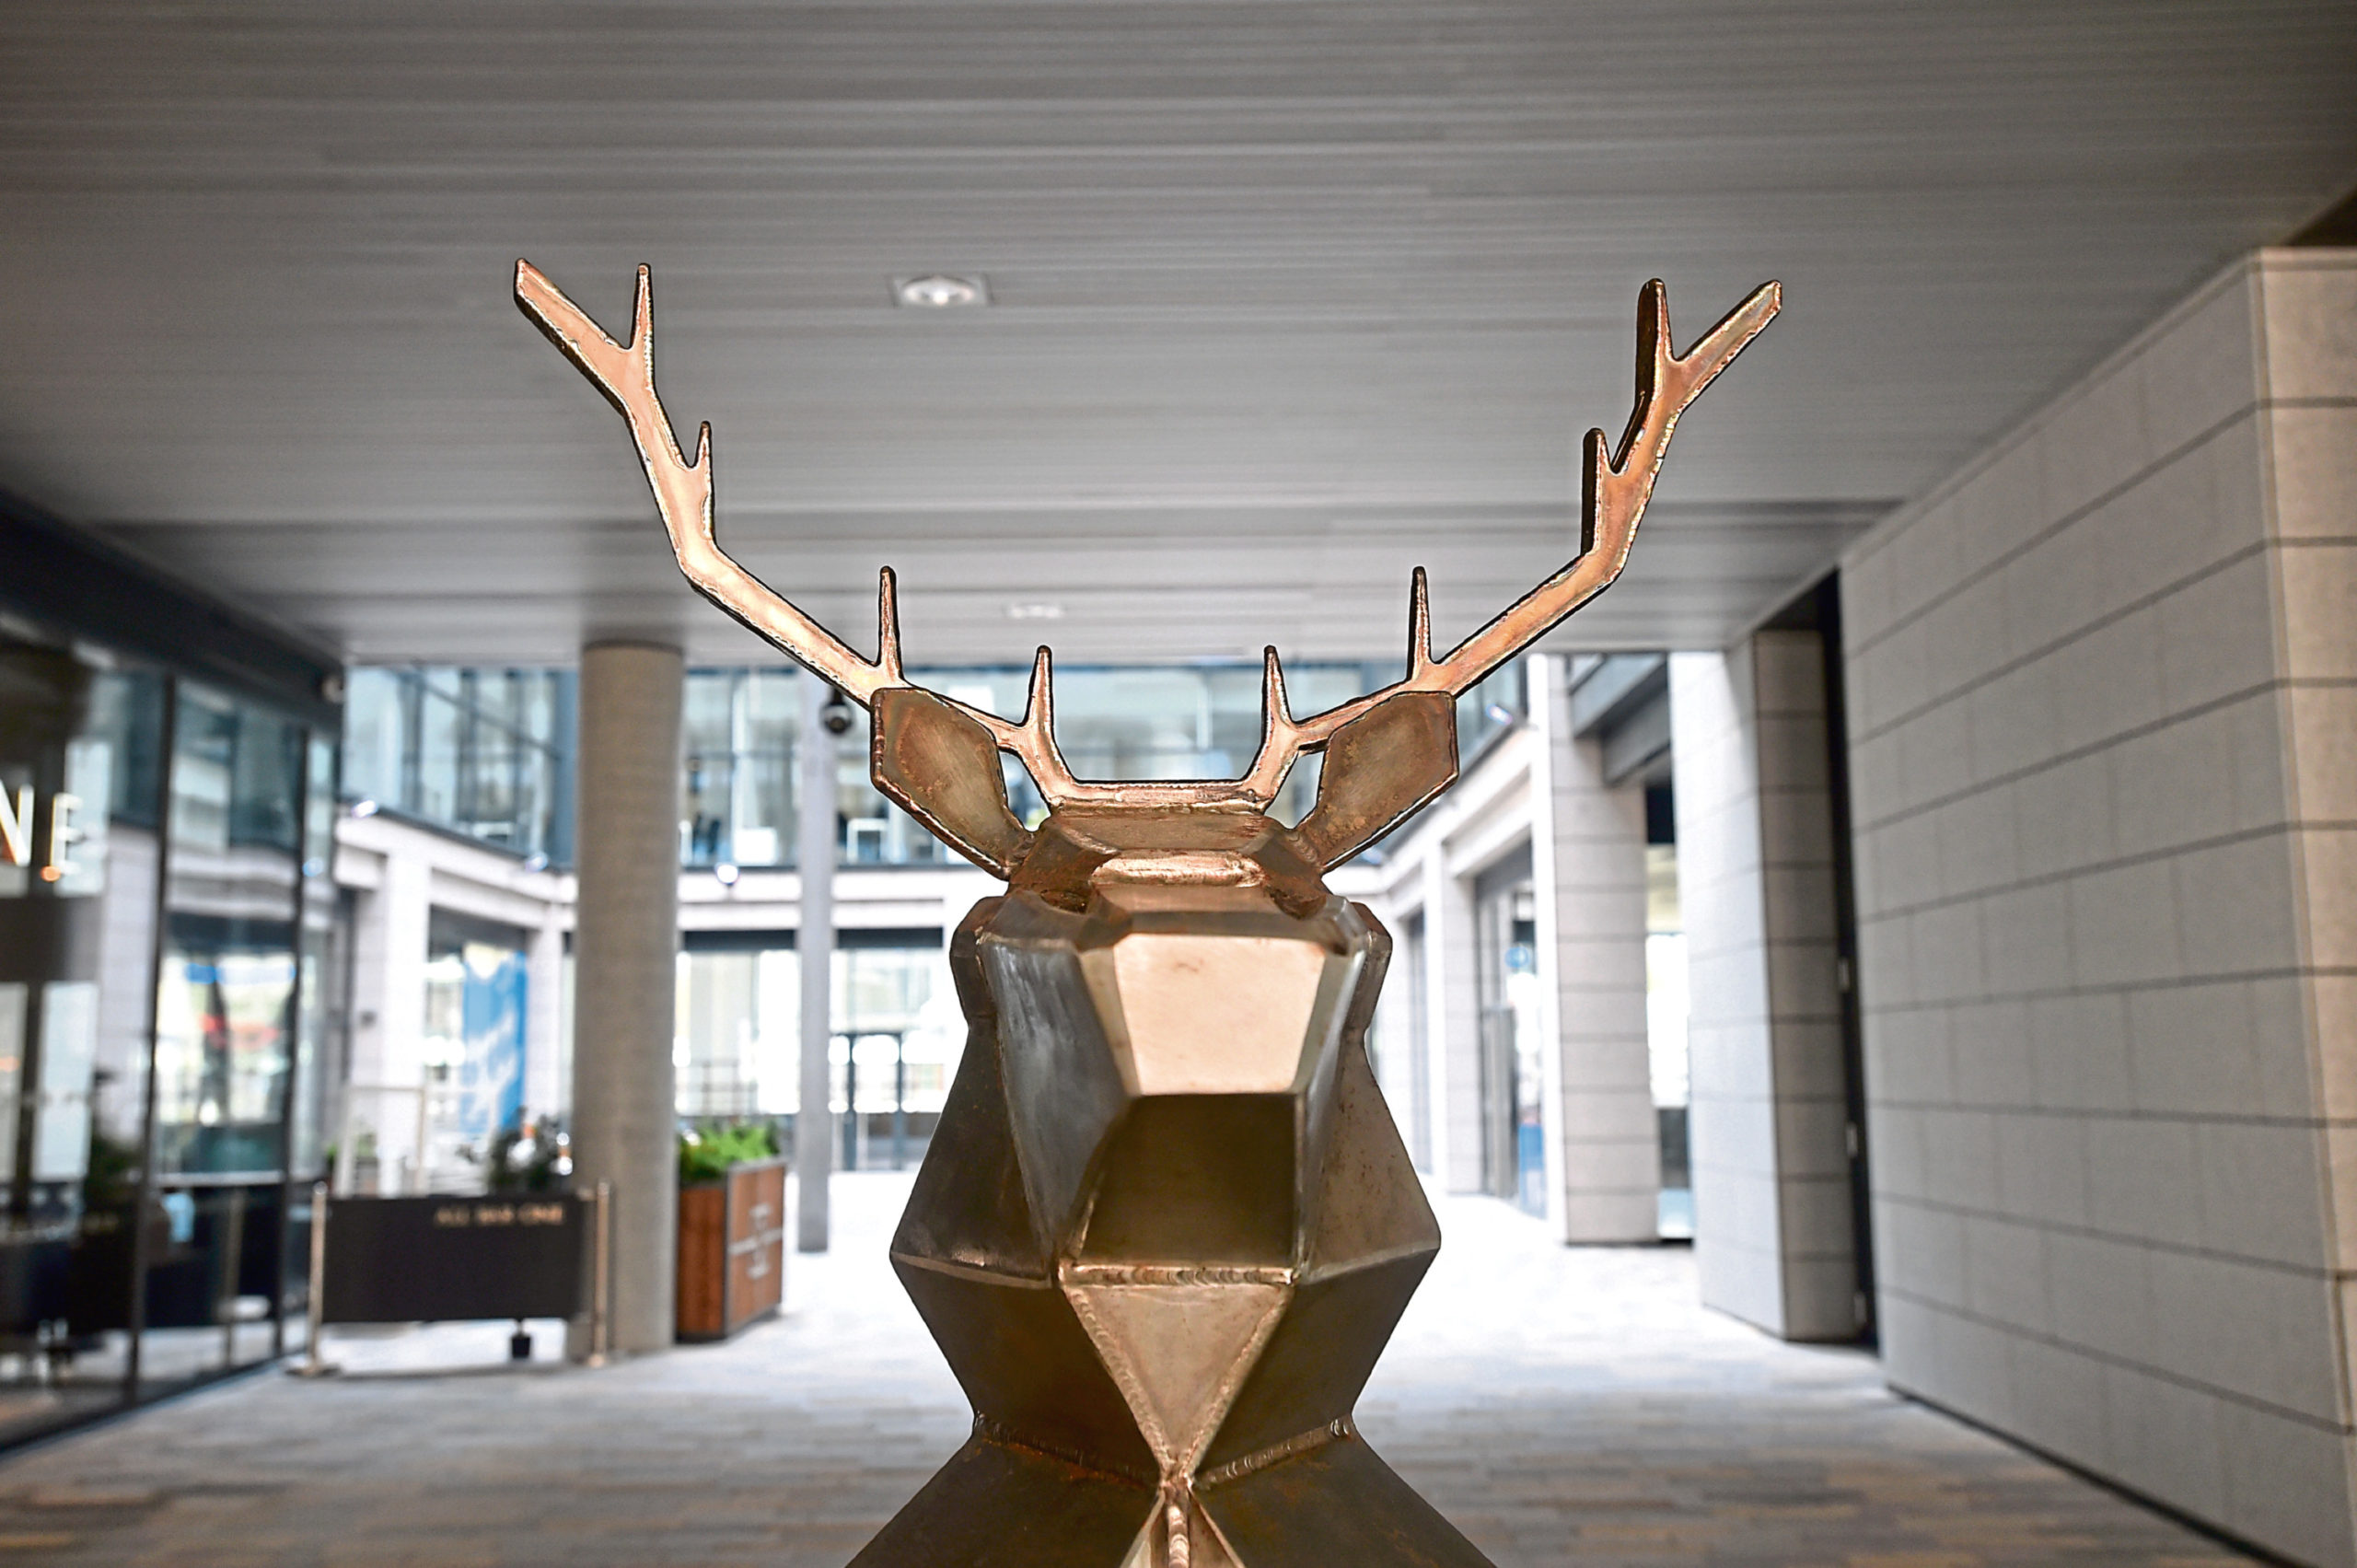 One of the new sculptures at Marischal Square